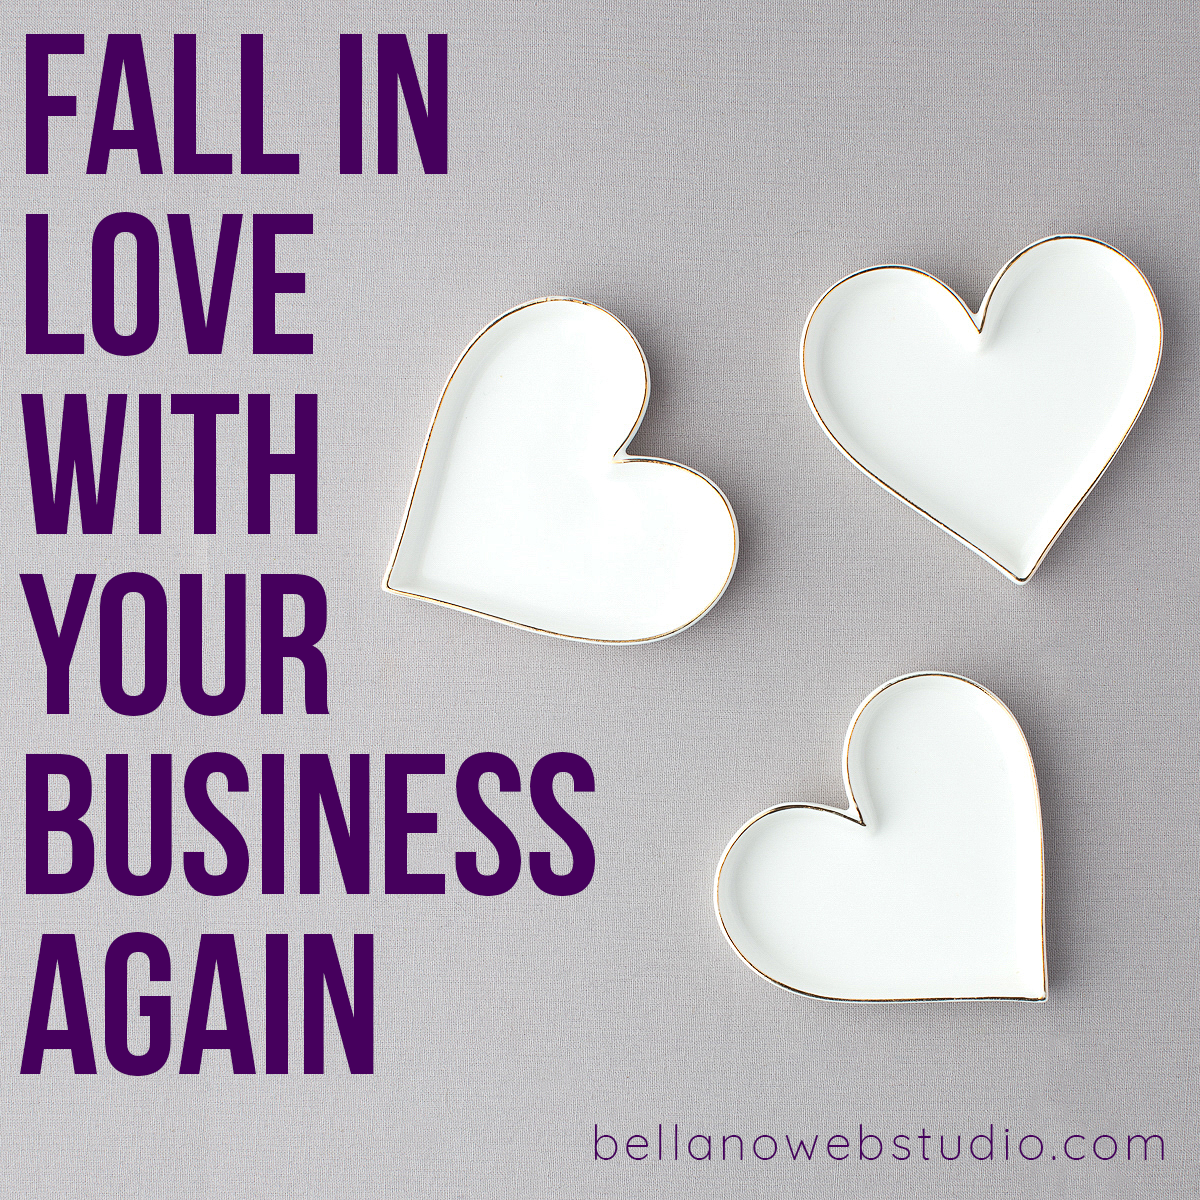 Fall in love with your business again